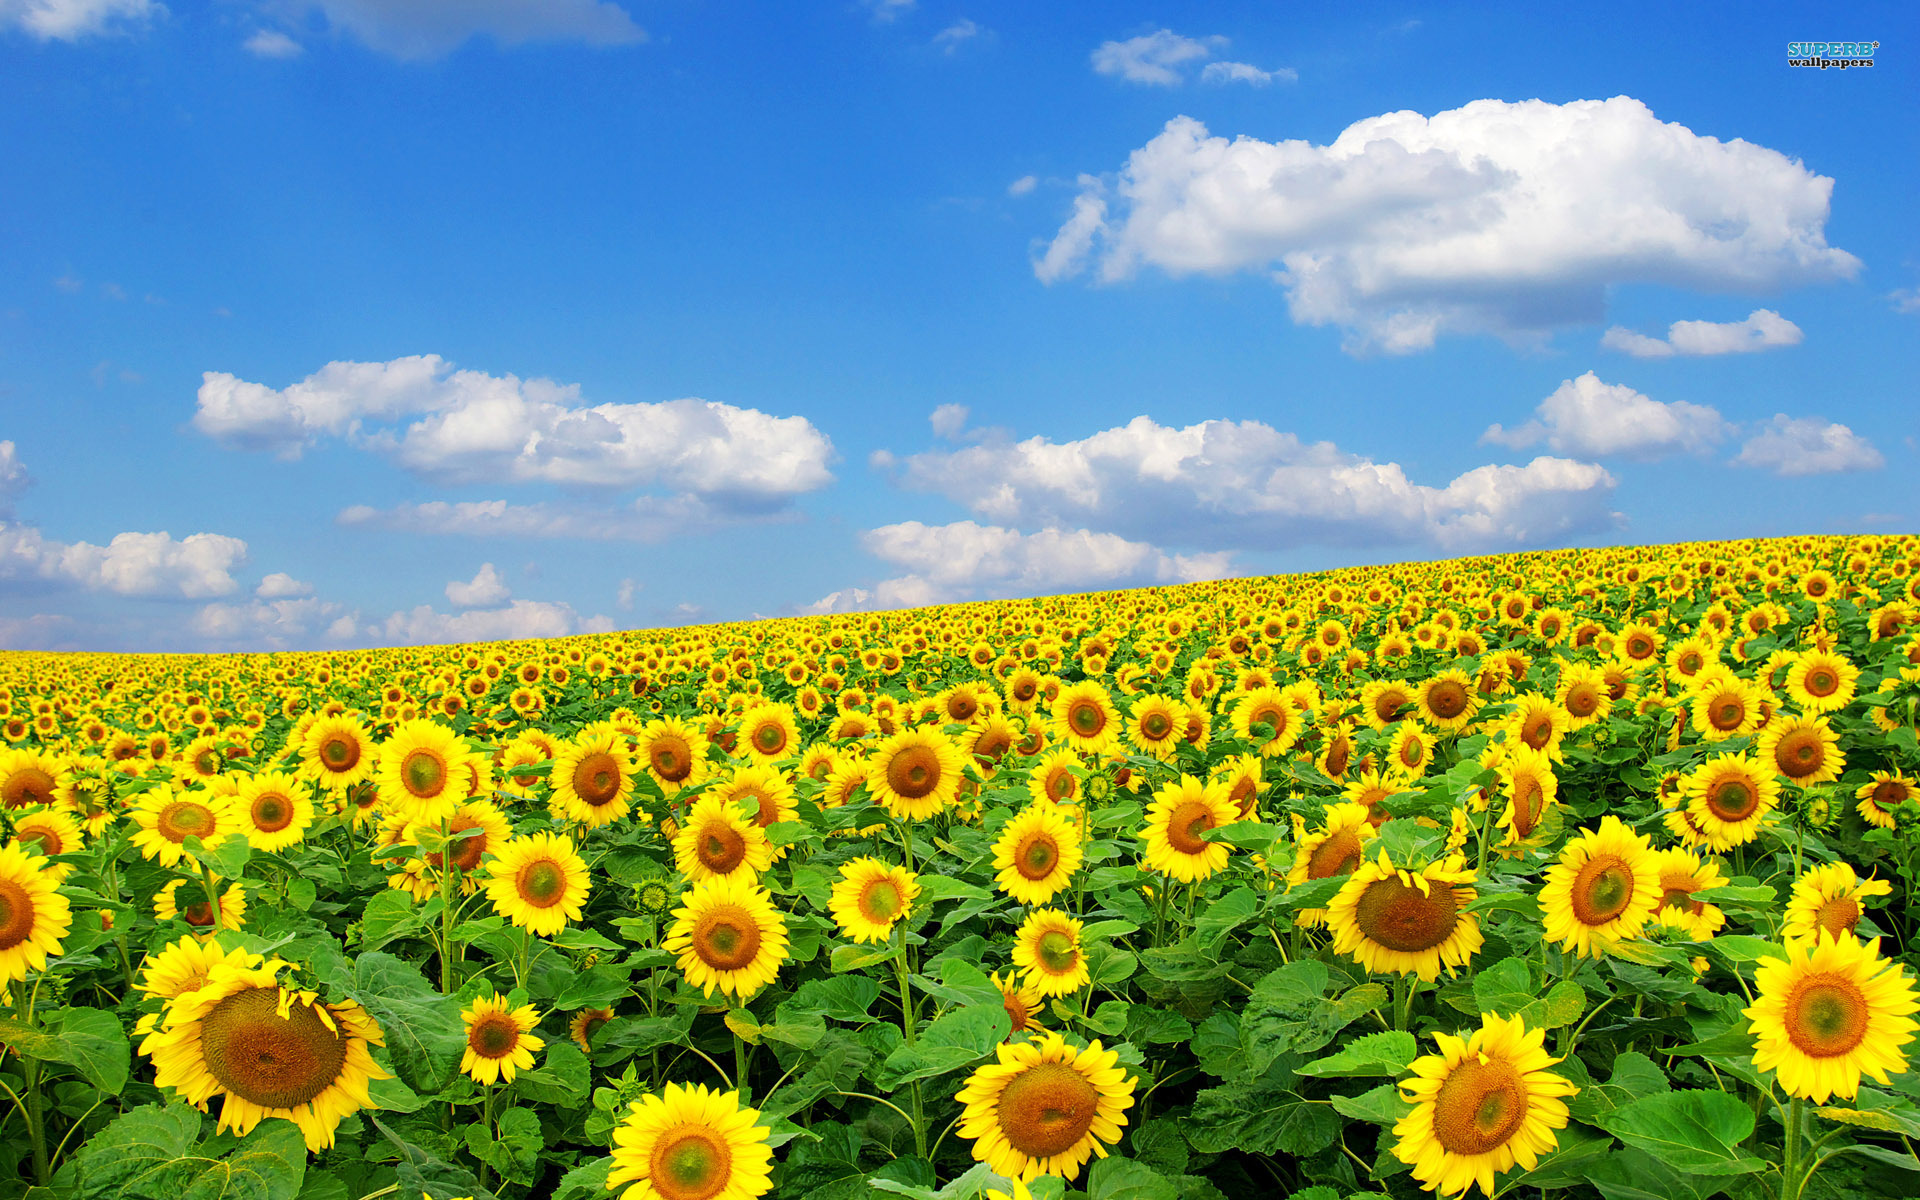 Sunflower Field Wallpaper HD Images #x2lf7t